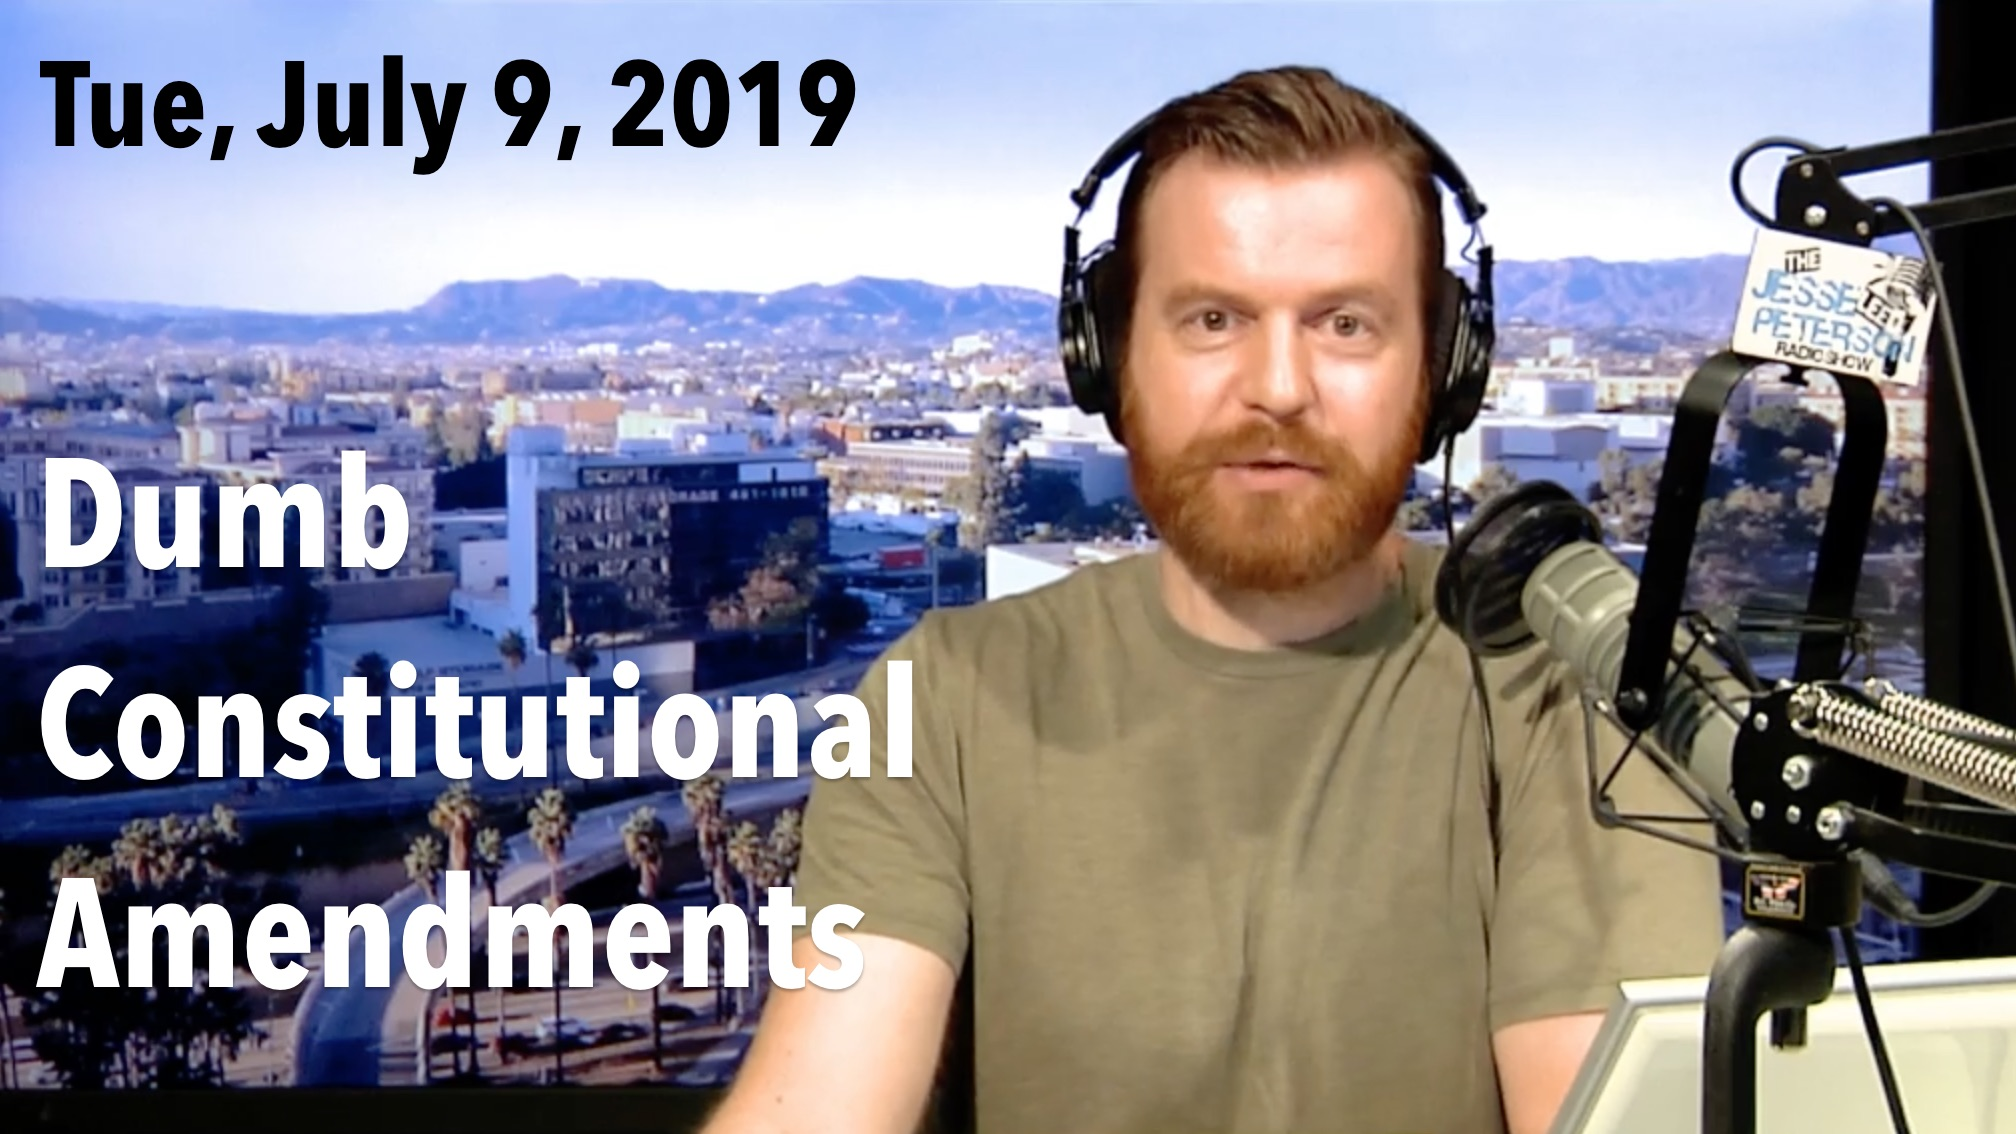 Thumbnail from Tuesday, July 9, 2019 – Dumb Constitutional Amendments